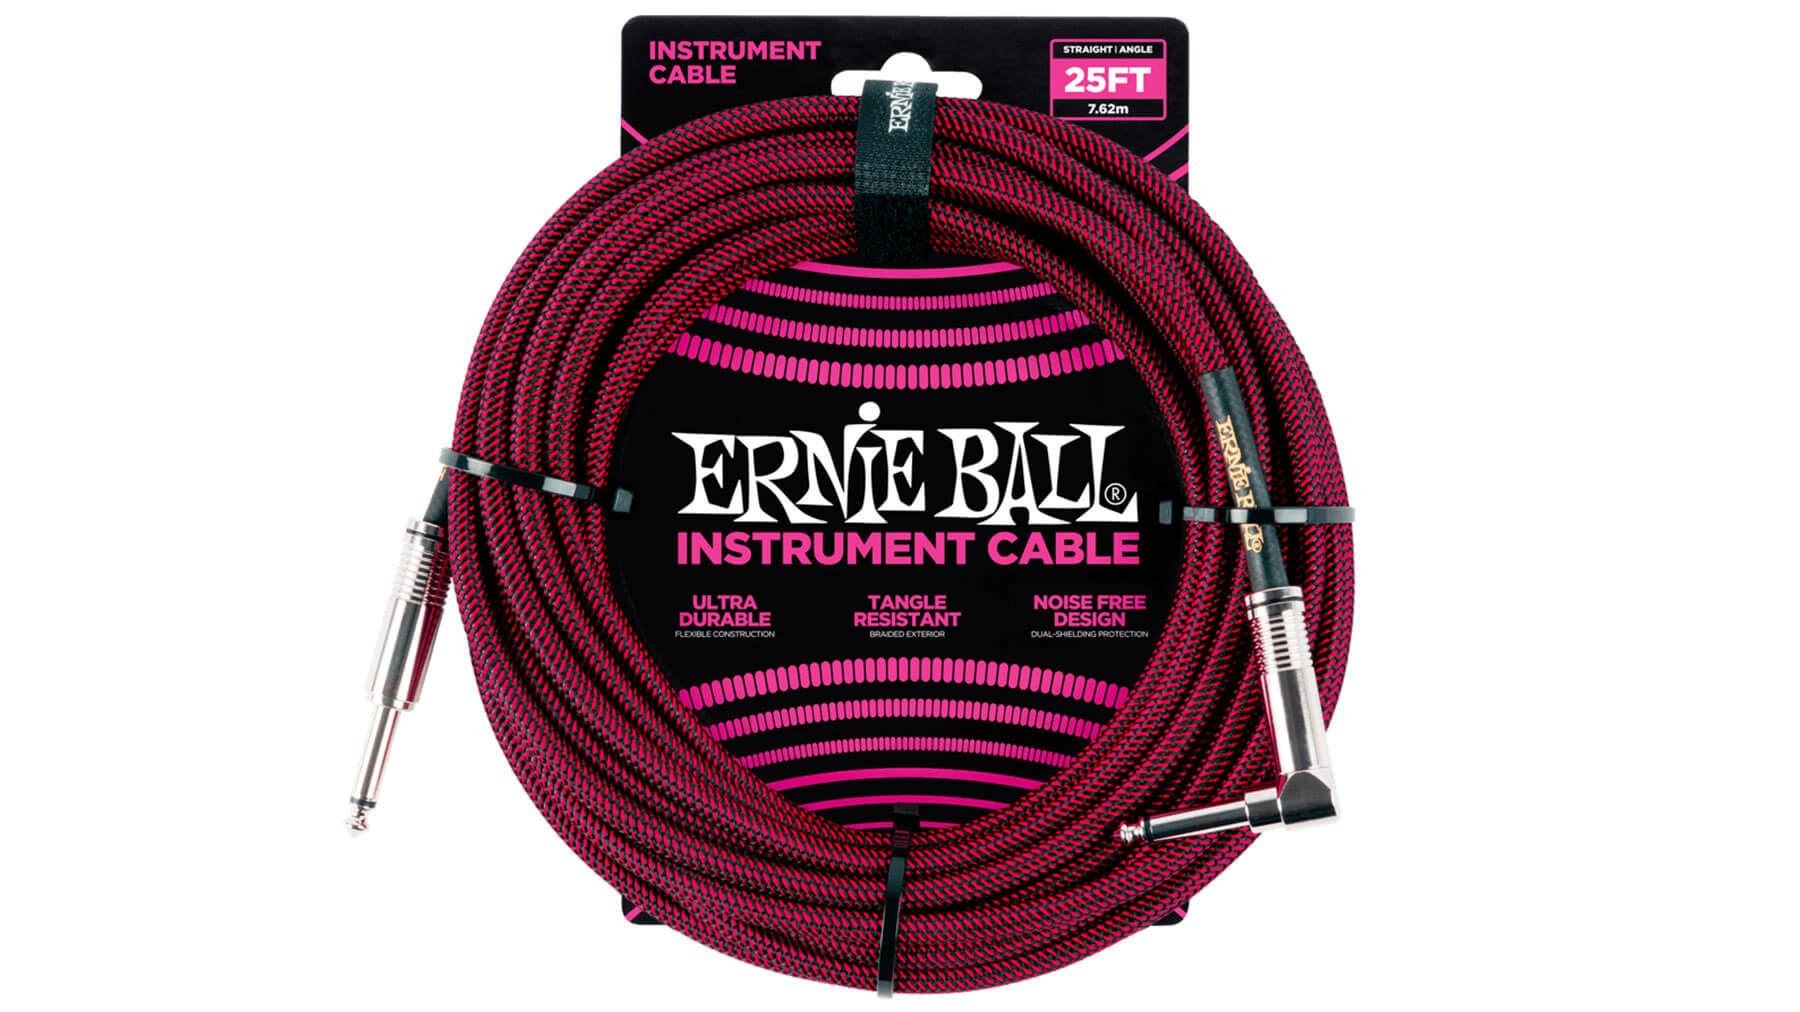 Ernie Ball 25 FT Straight to Angle Instrument Cable Red/Black